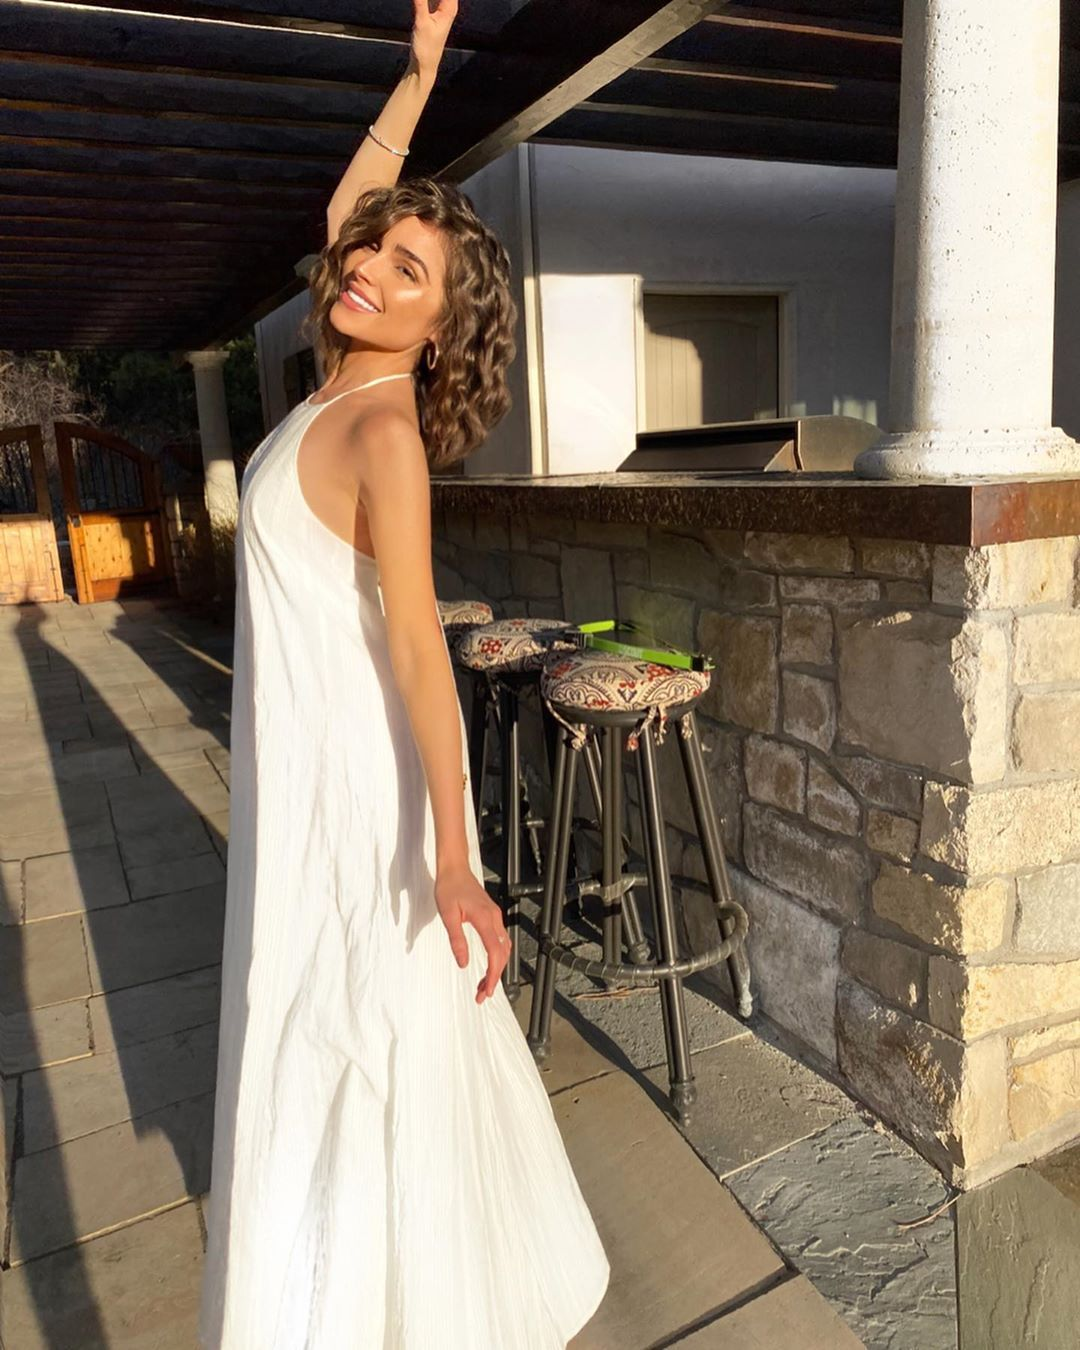 Olivia Culpo White Backless Crinkle Striped Lacademie Maxi Dress All White Spring Summer 2020 On Sassy Daily Maxi Dress Maxi Dress Cotton Olivia Culpo